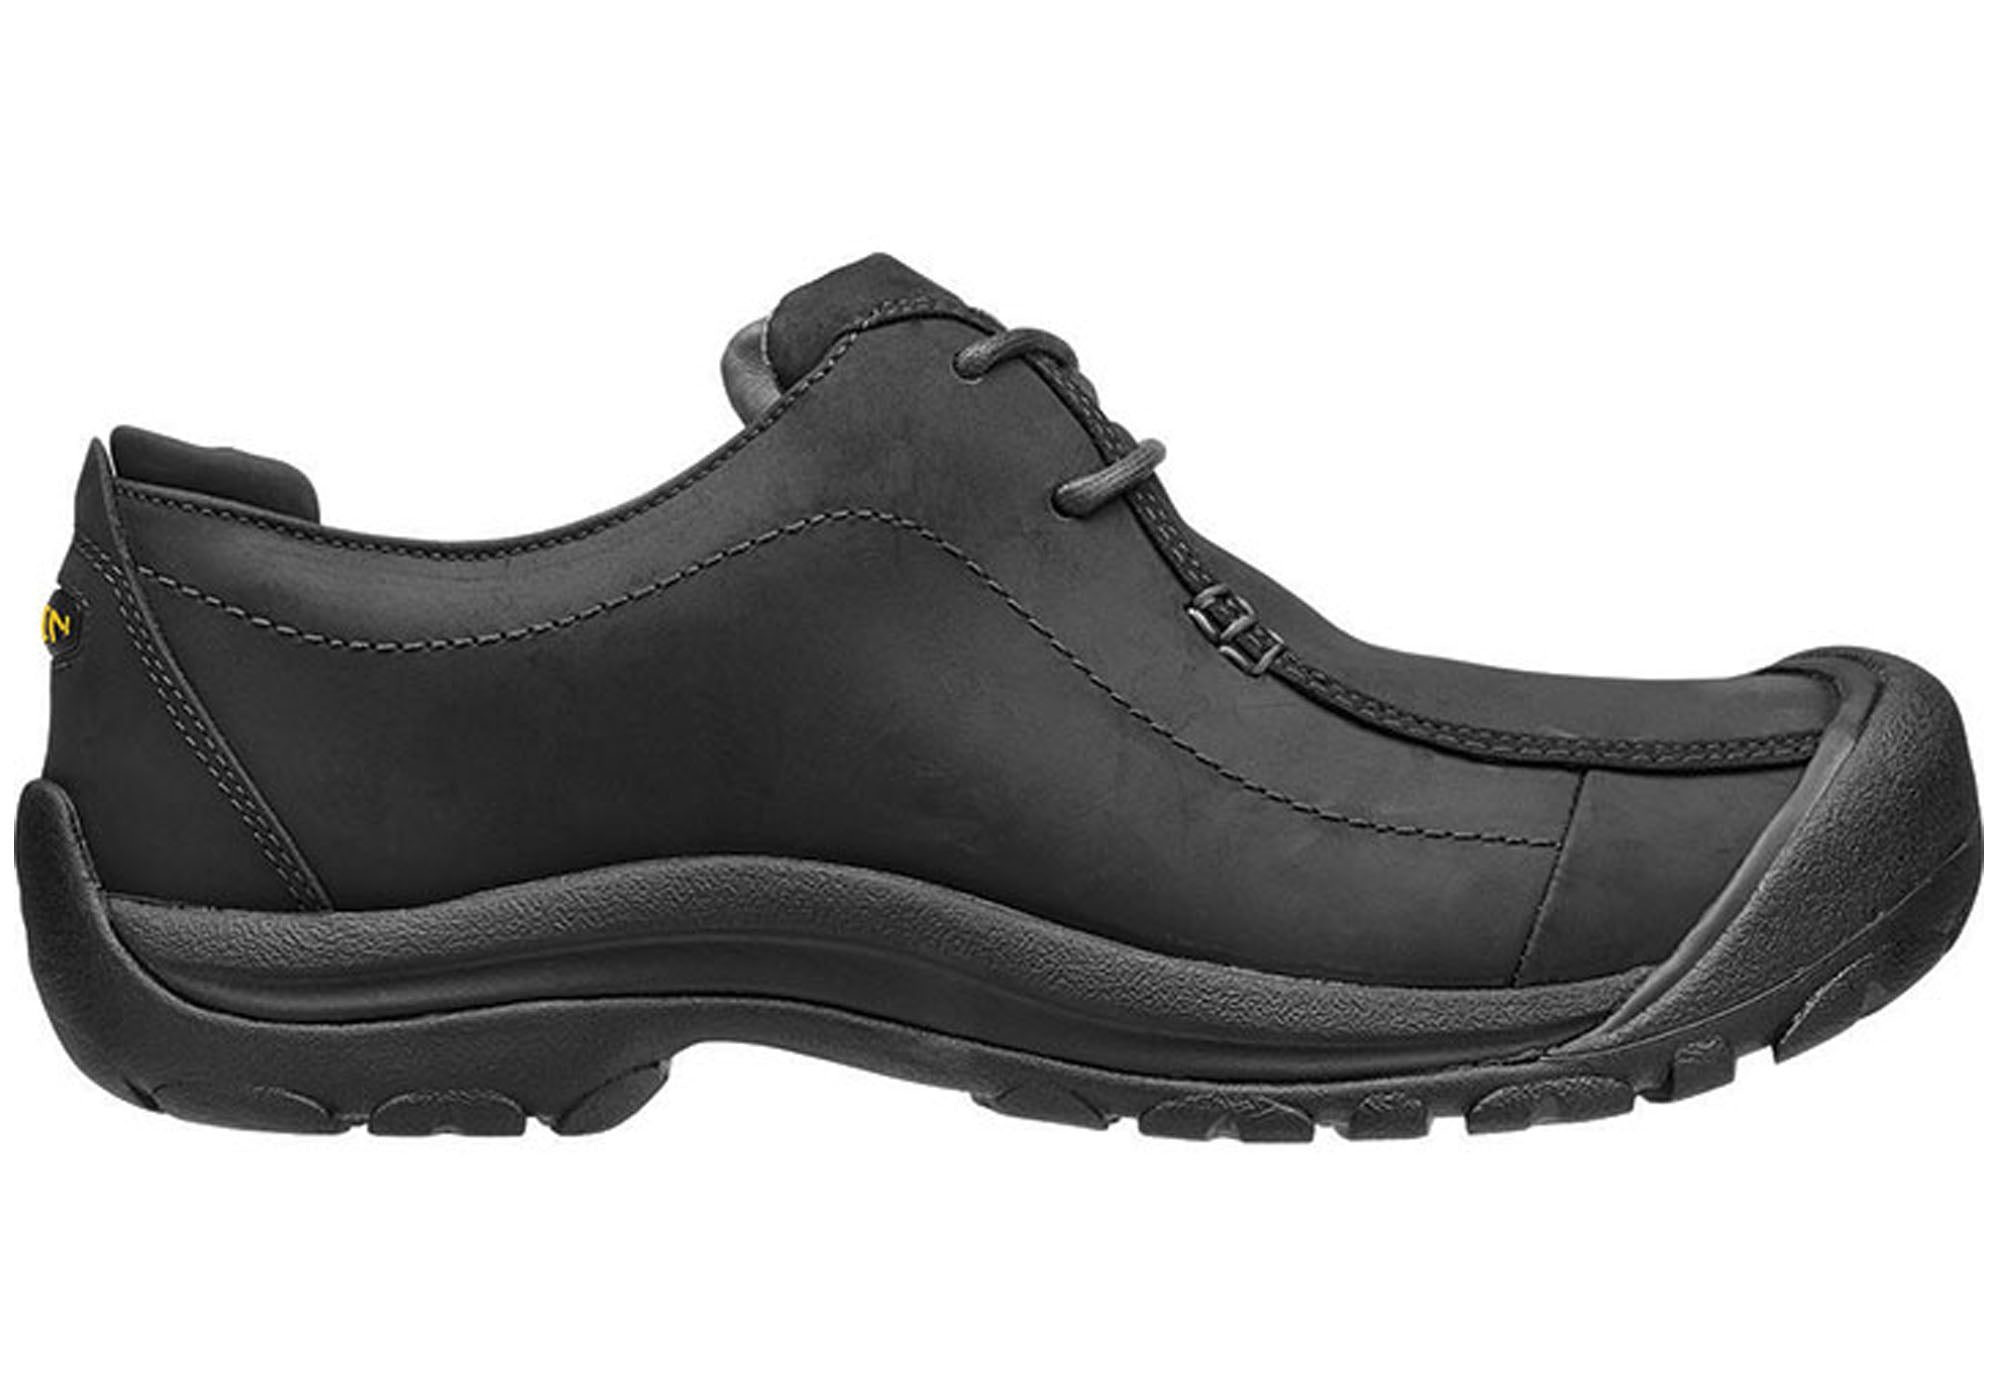 87e9f8744668 Keen Portsmouth II Mens Leather Lace up Wide Fit Shoes